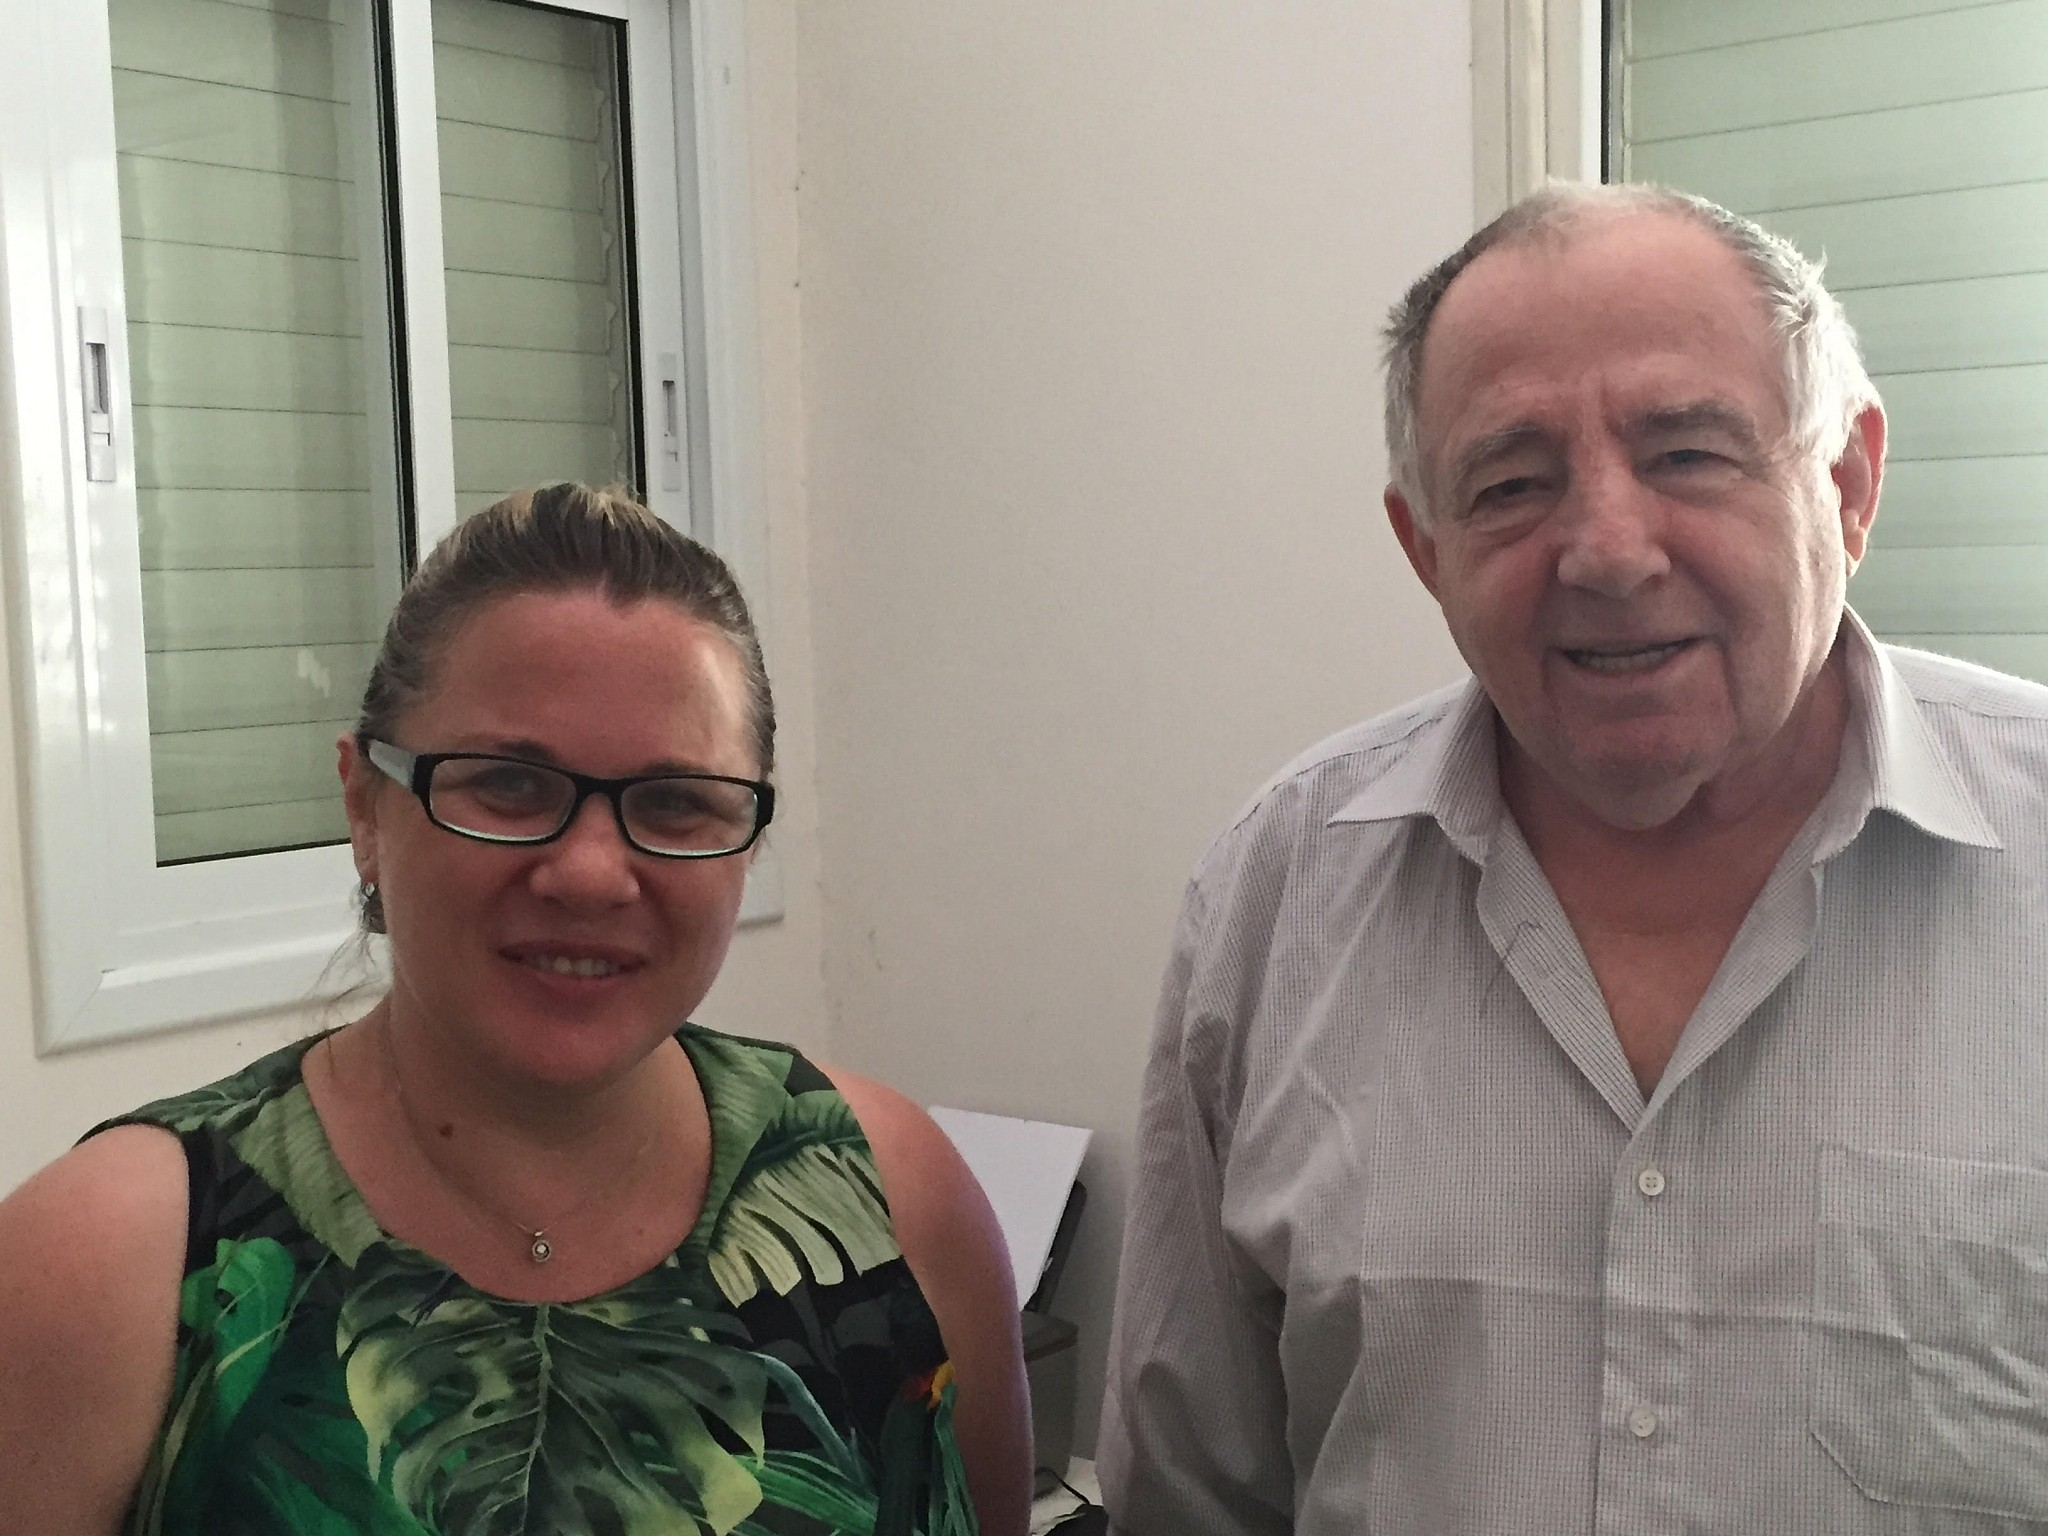 Alexander Kalentyrsky, a construction engineer who helped build the concrete base of the Chernobyl sarcophagus in 1986, at his home in Bat Yam alongside former MK Ksenia Svetlova, June 26, 2019 (ToI staff)